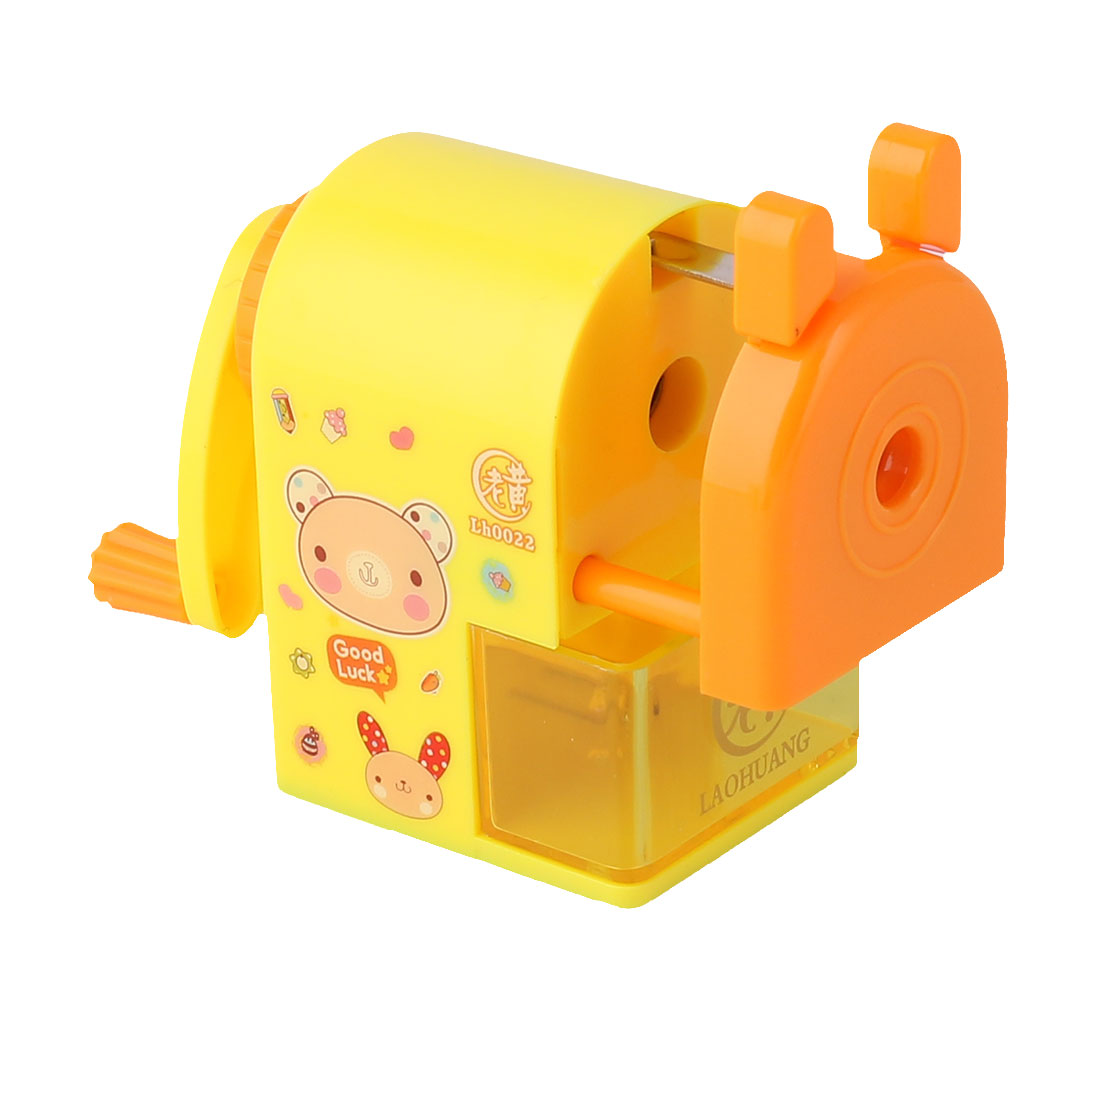 Bear Musical Note Print Manual Desktop Pencil Sharpener Yellow